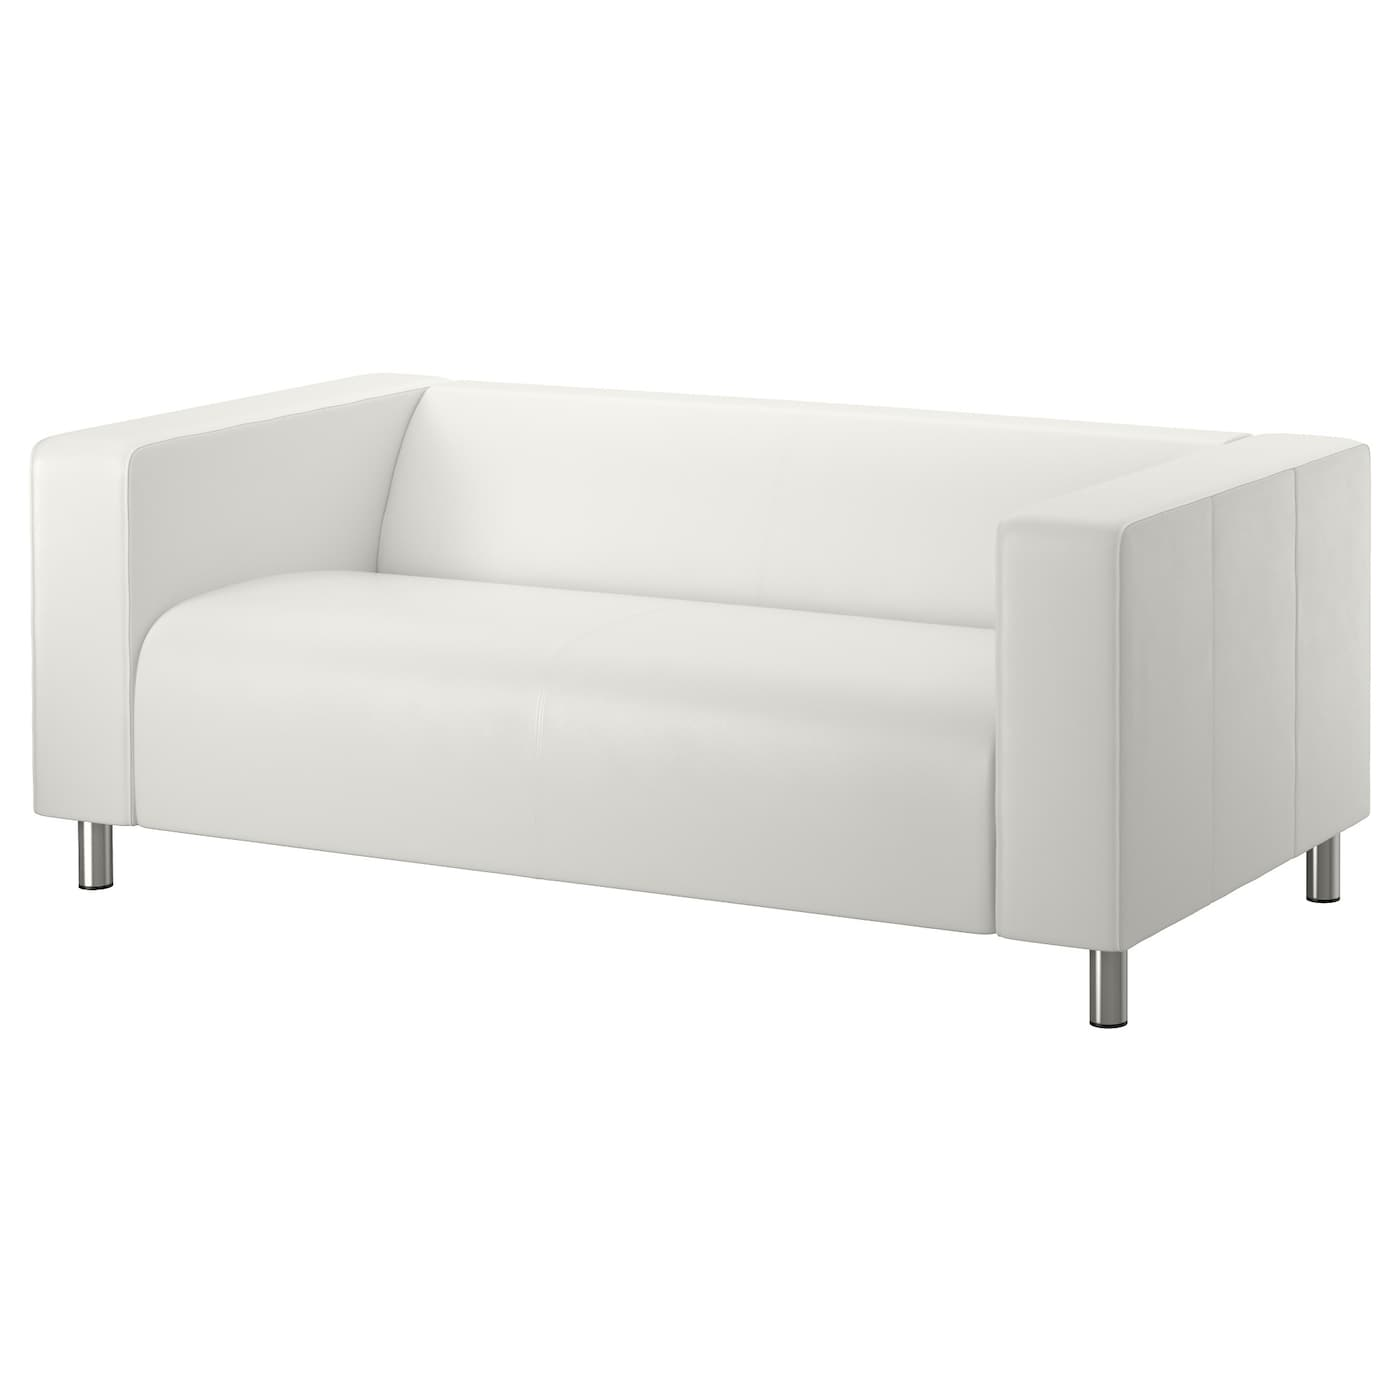 klippan two seat sofa kimstad white ikea. Black Bedroom Furniture Sets. Home Design Ideas